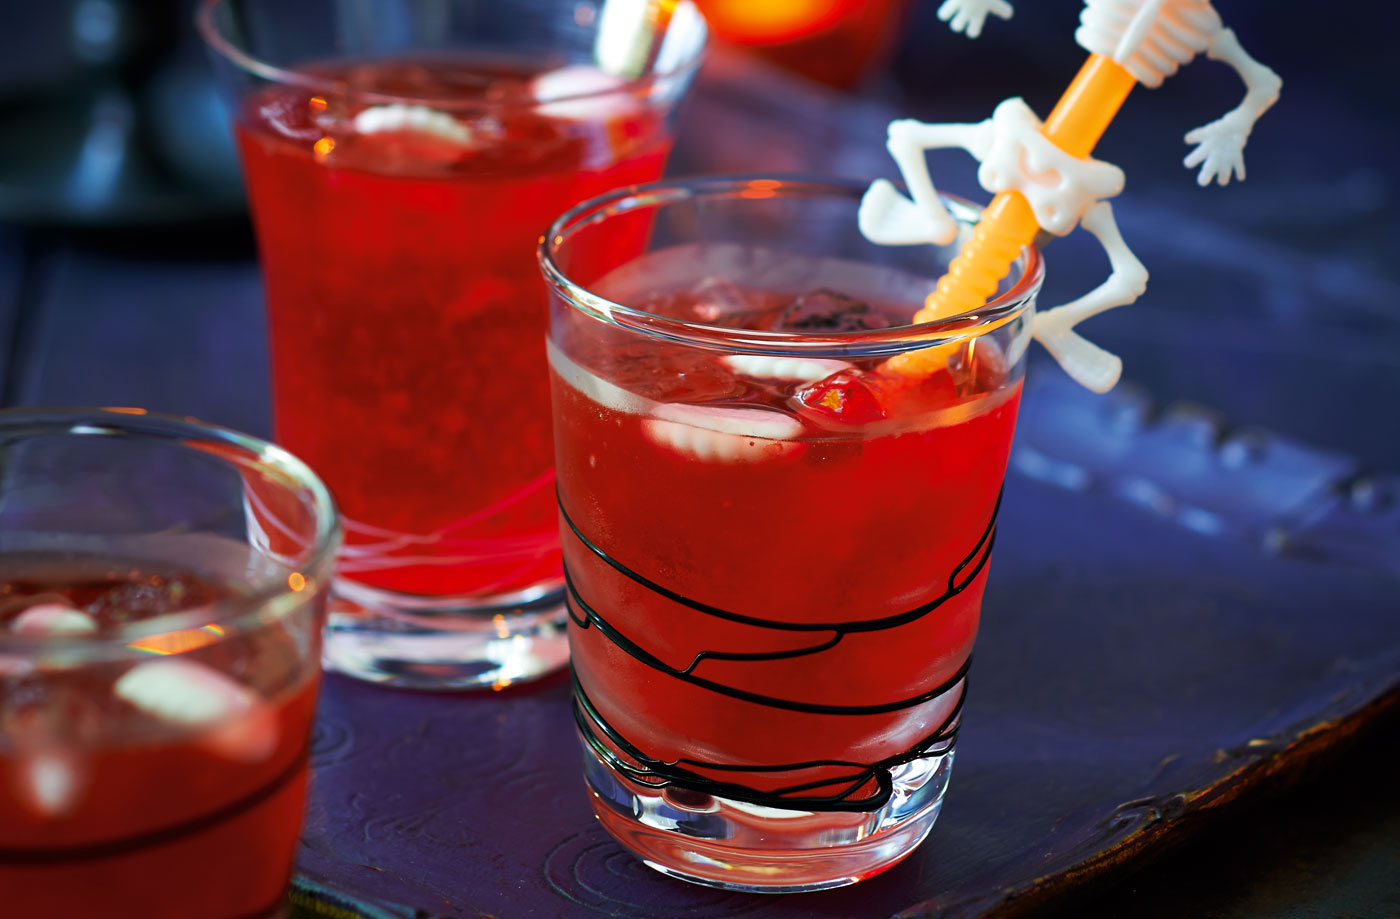 Top 10 sambuca drinks with recipes for Halloween alcoholic punch bowl recipes